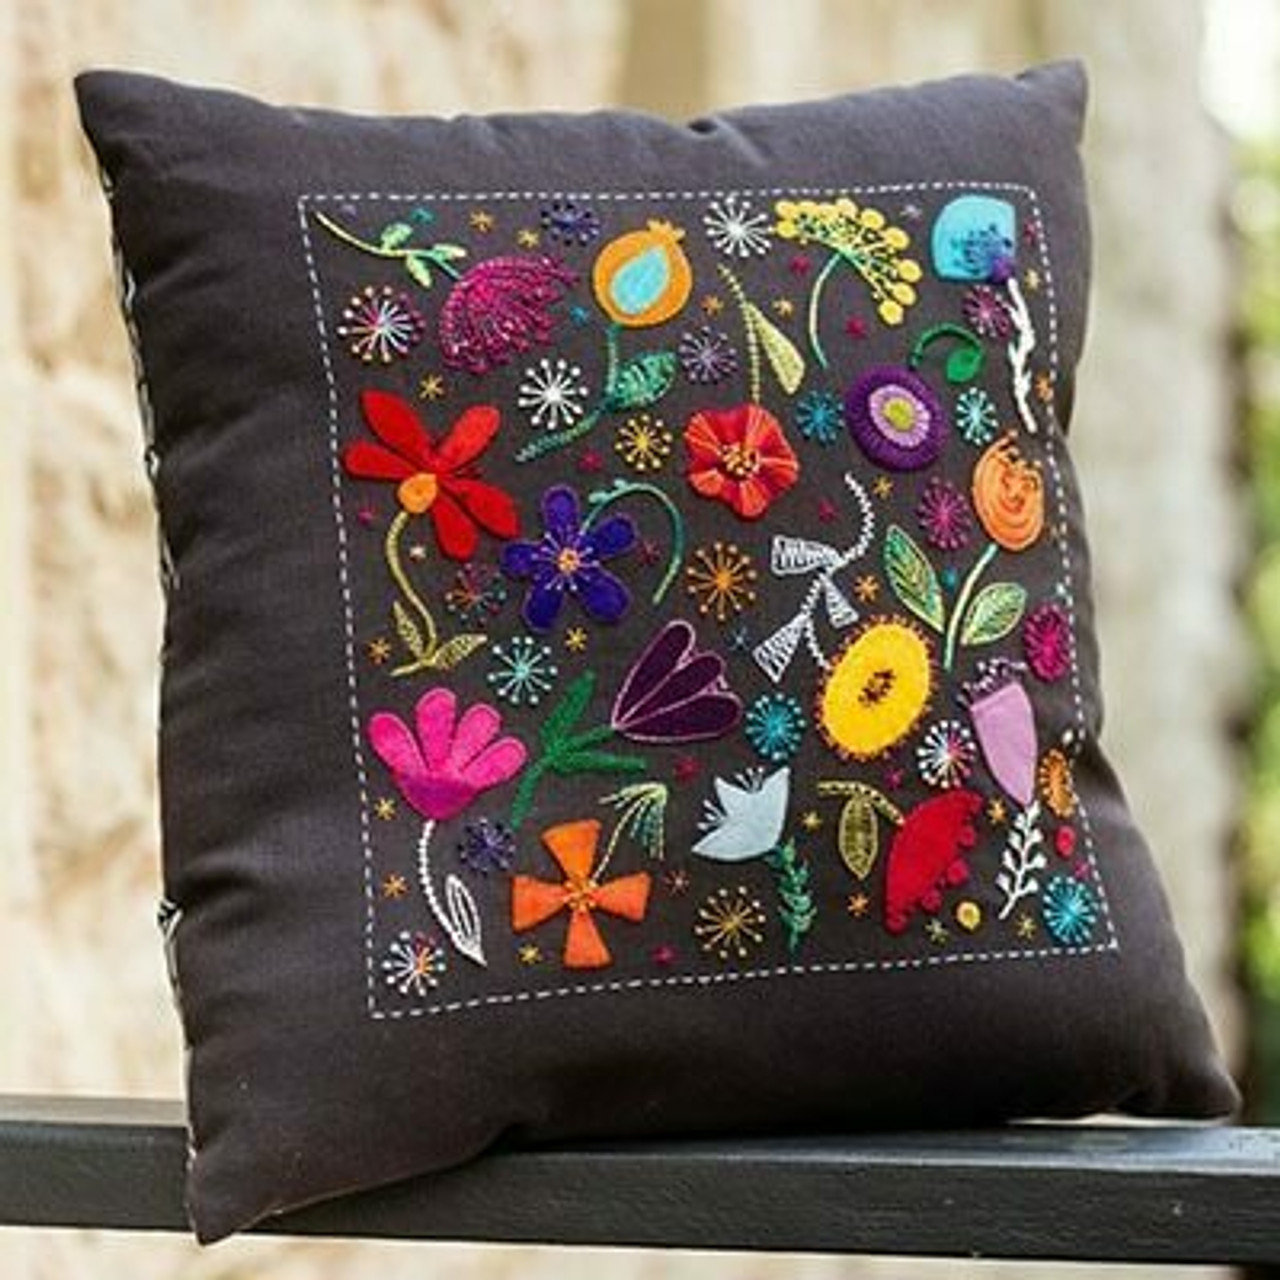 Wendy Williams : Scattered Flowers Cushion